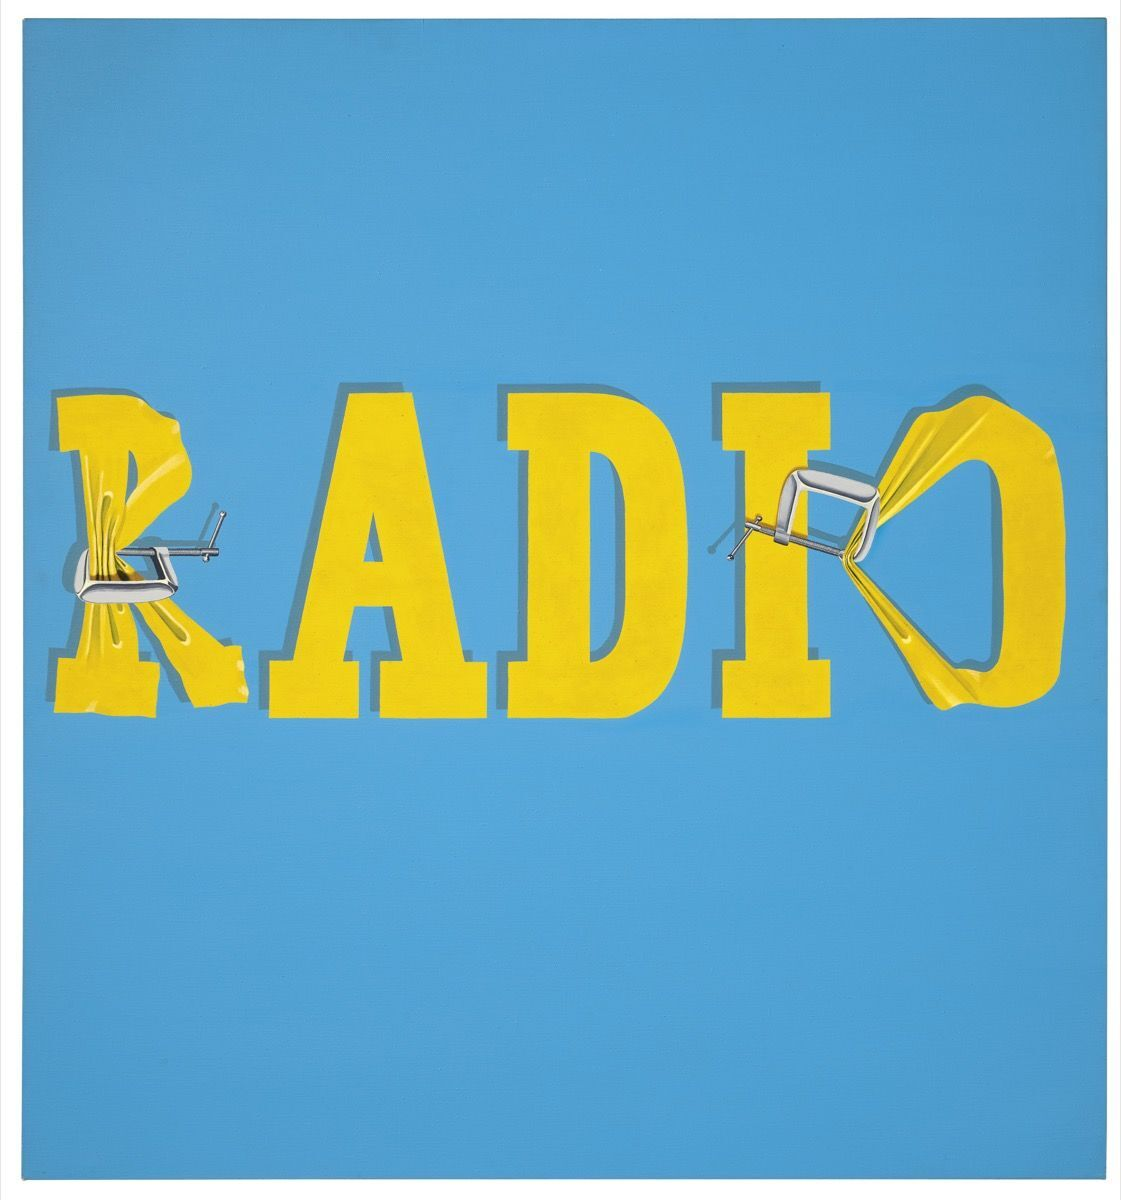 Ed Ruscha, Hurting the Word Radio #2, 1964. Courtesy of Christie's Images Ltd.